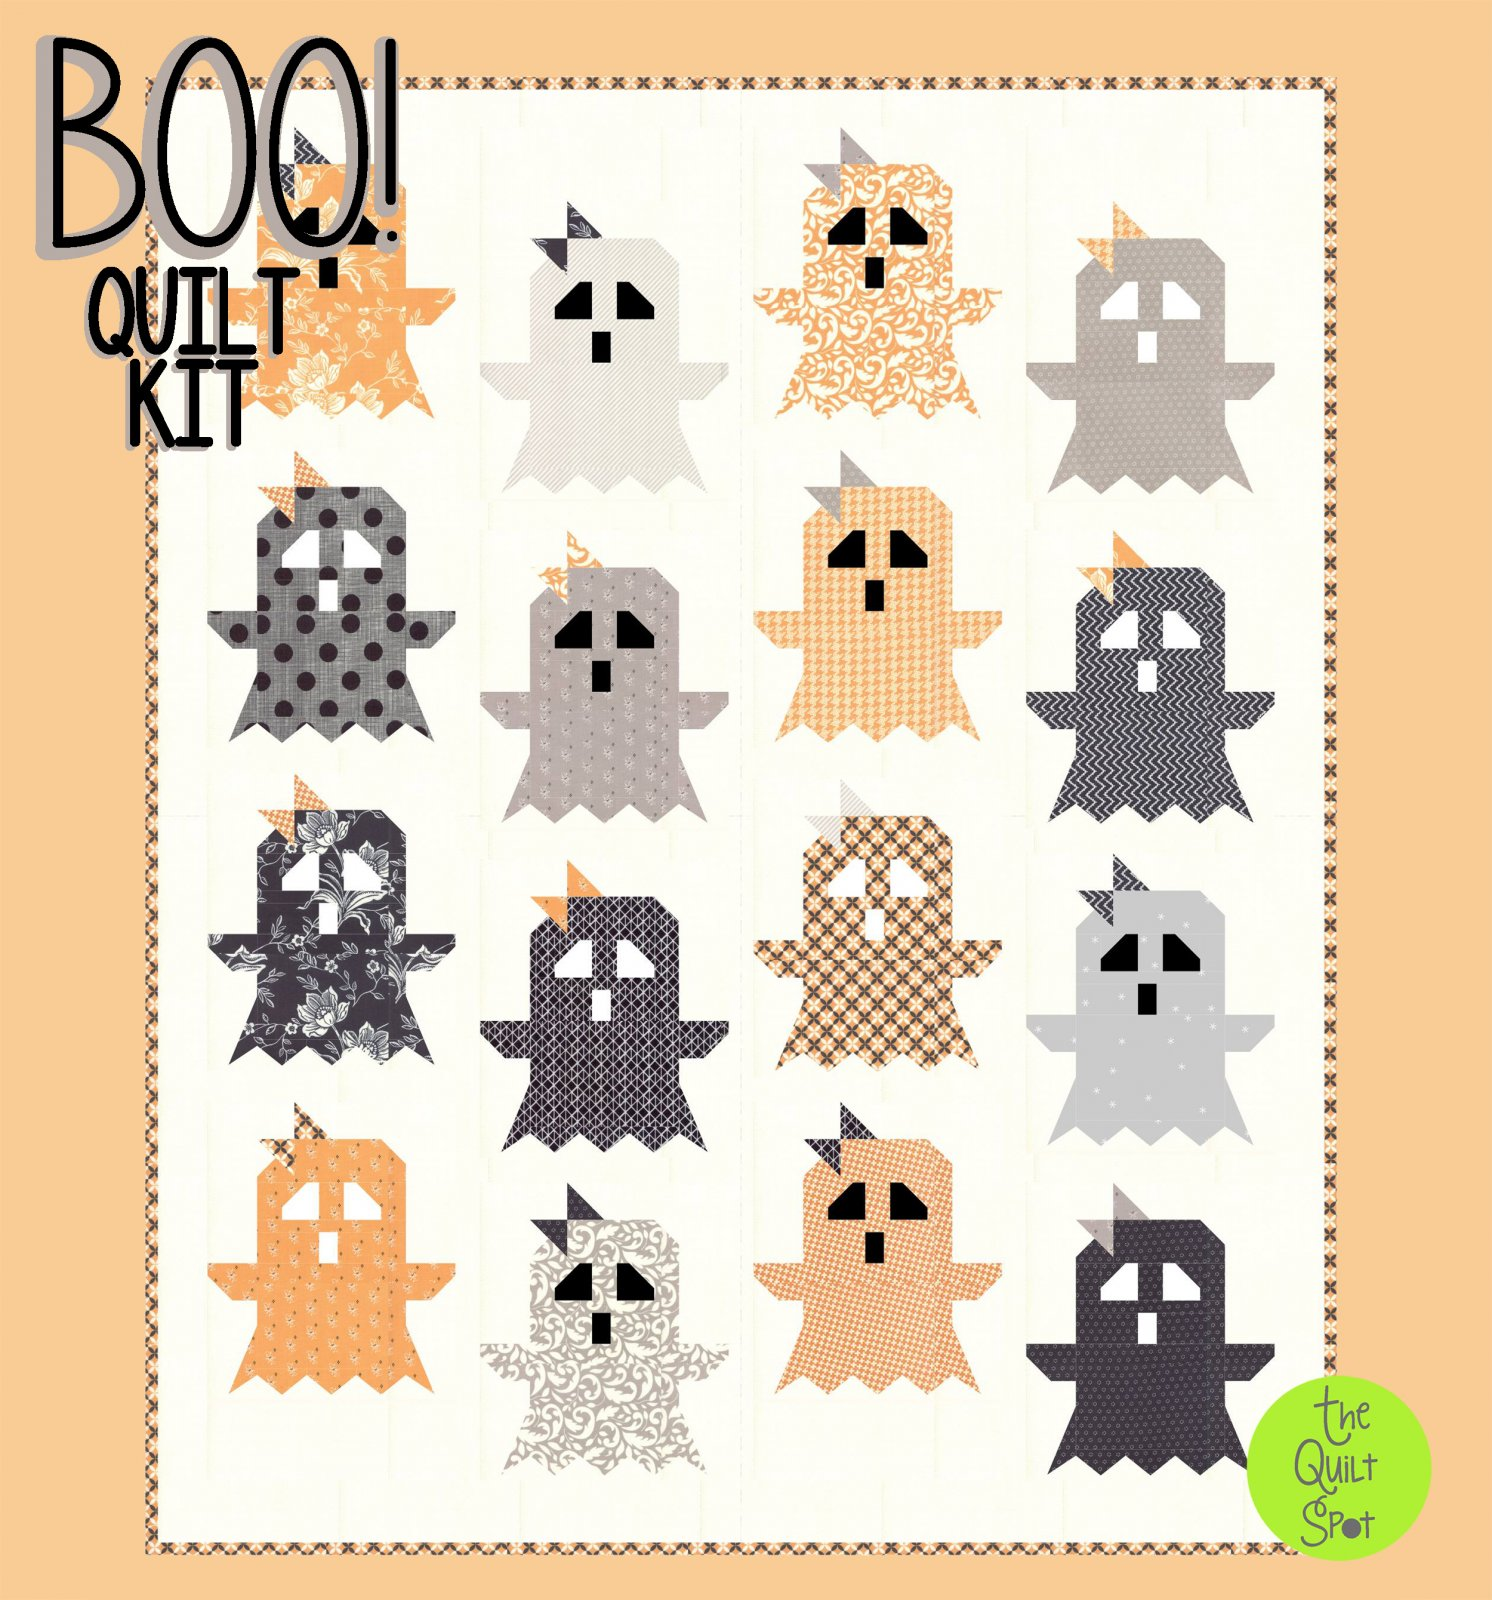 Boo! Quilt Top Kit